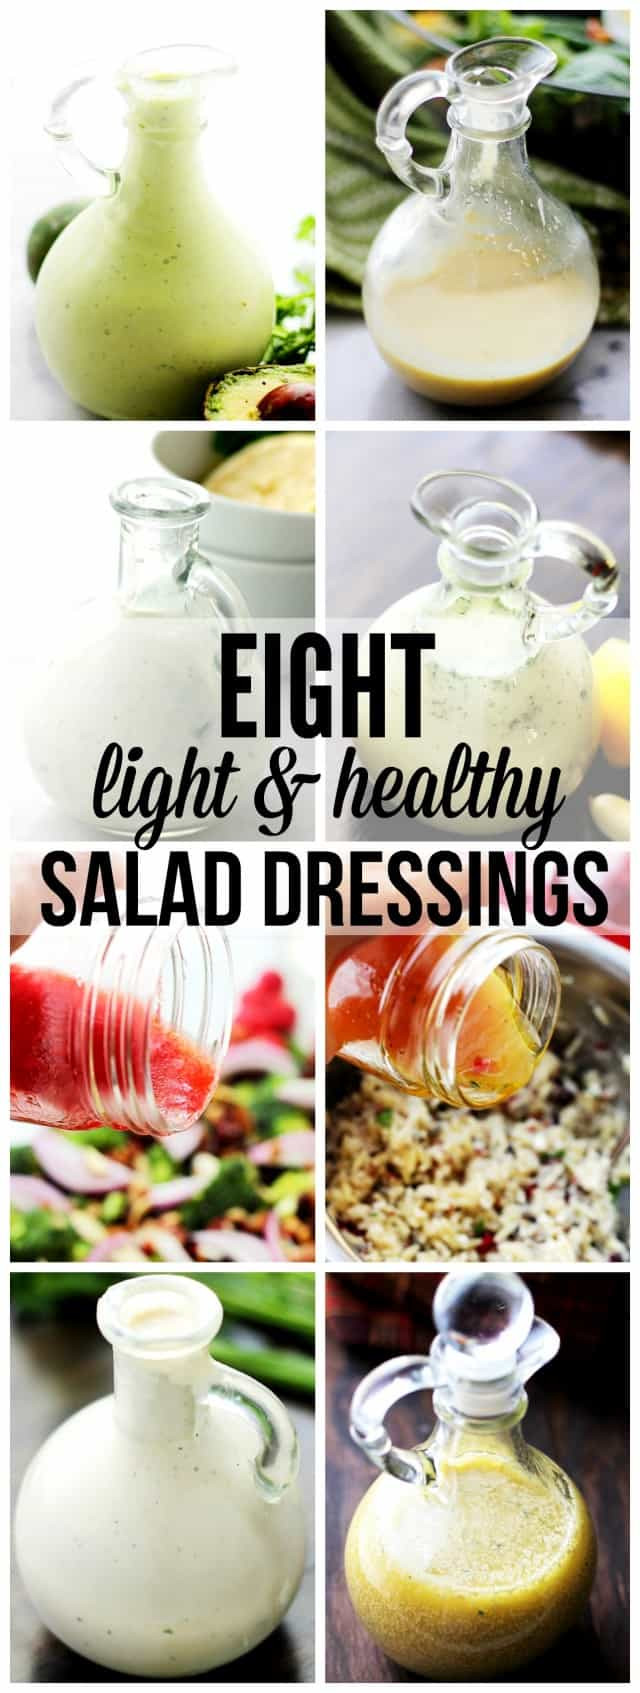 Healthy Homemade Salads  Eight Light and Healthy Homemade Salad Dressings Recipes